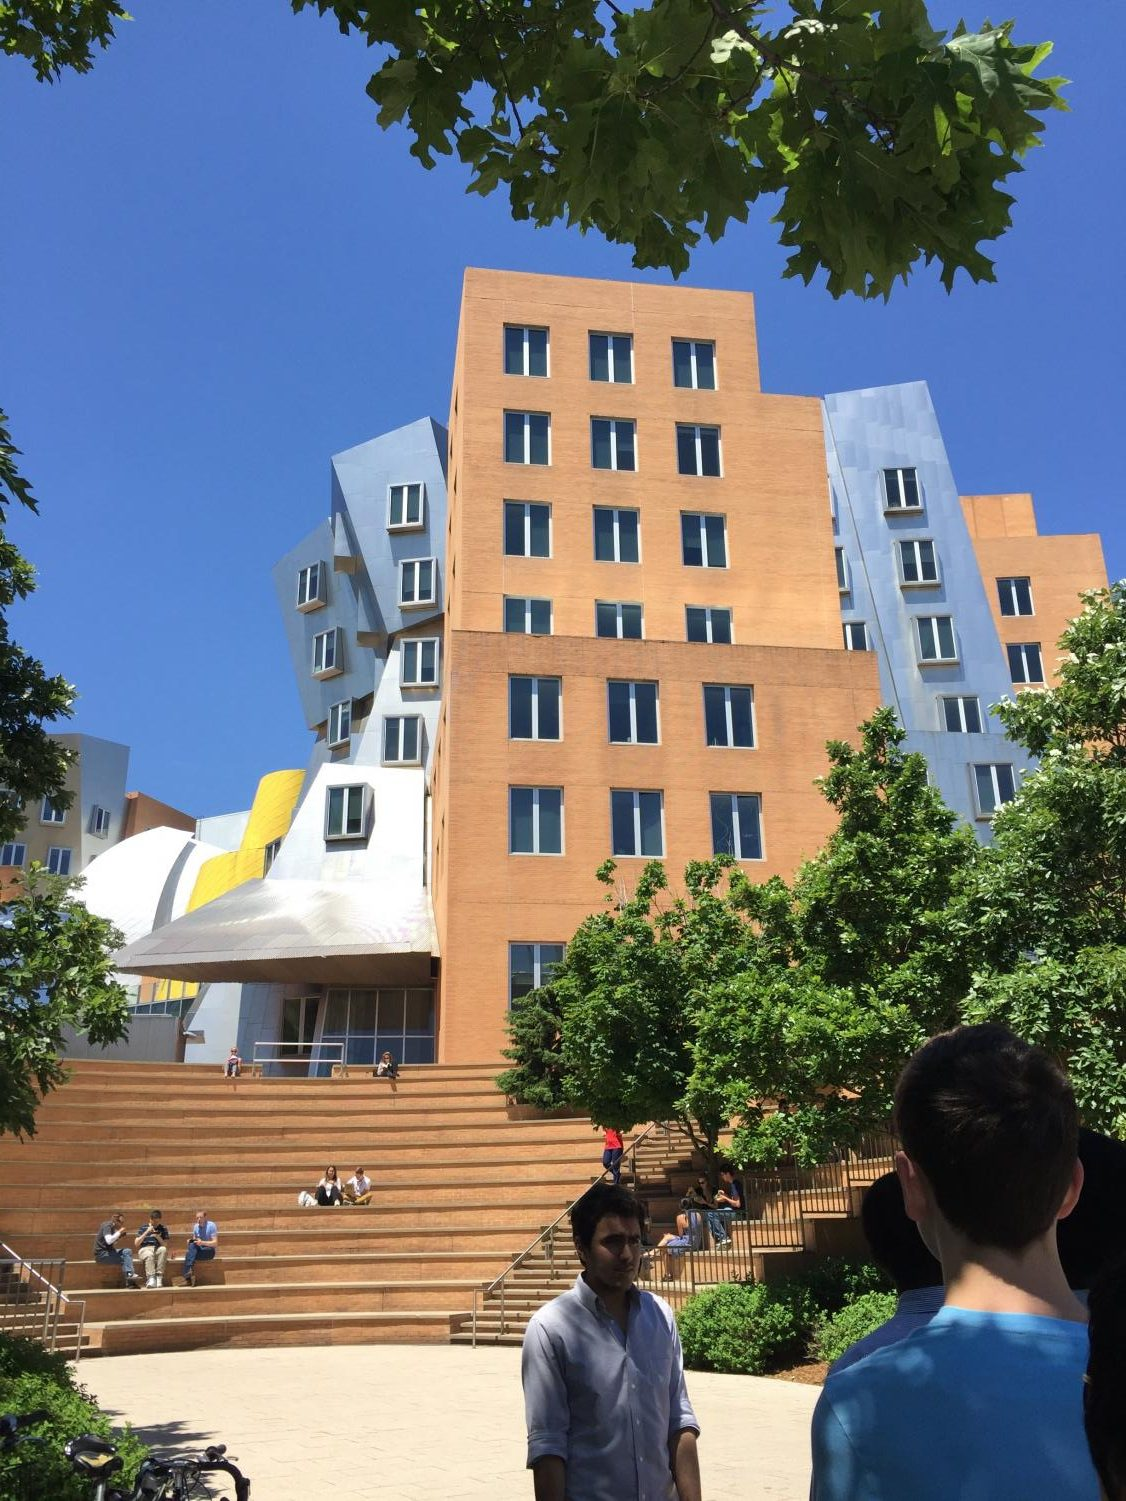 As the future draws near, students have been spending their summer college visiting. Students observed the appearance of different campuses and was able to experience what websites cannot provide.